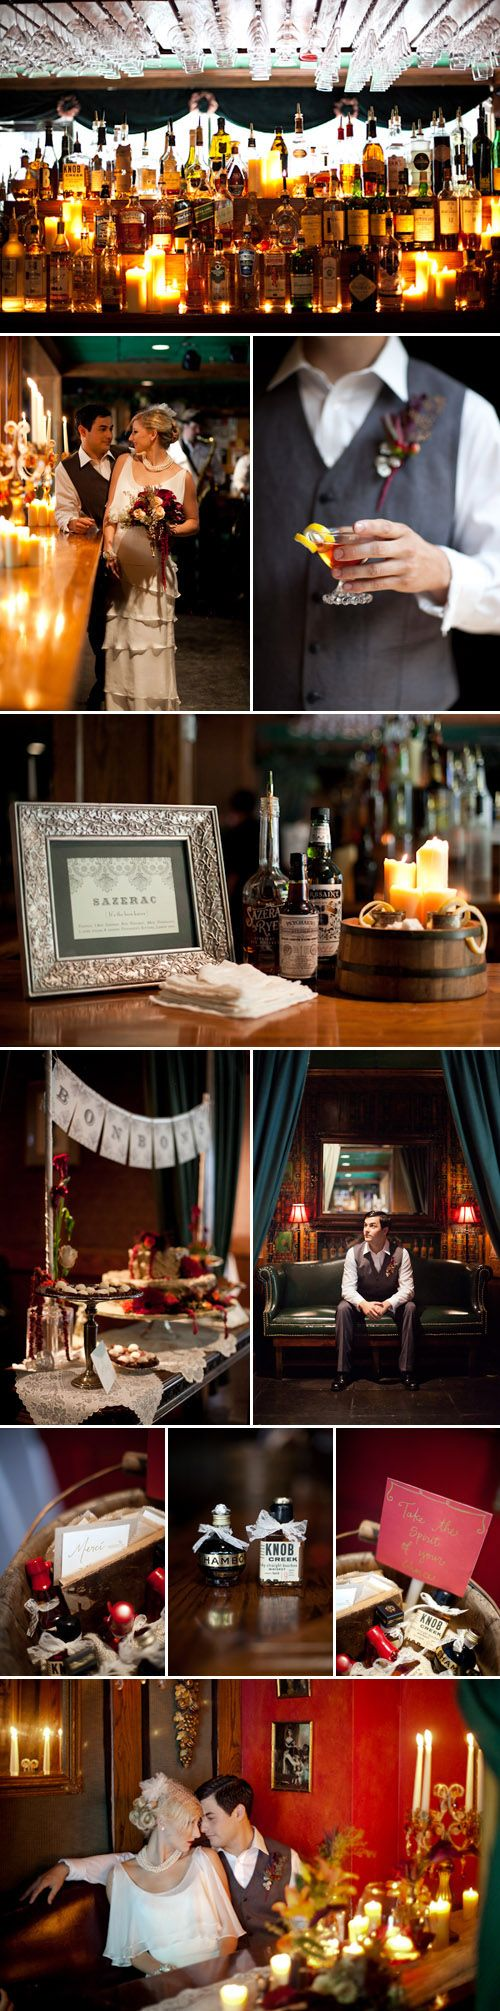 1920s wedding decoration ideas   best Party Ideas images on Pinterest  Birthdays Boy shower and